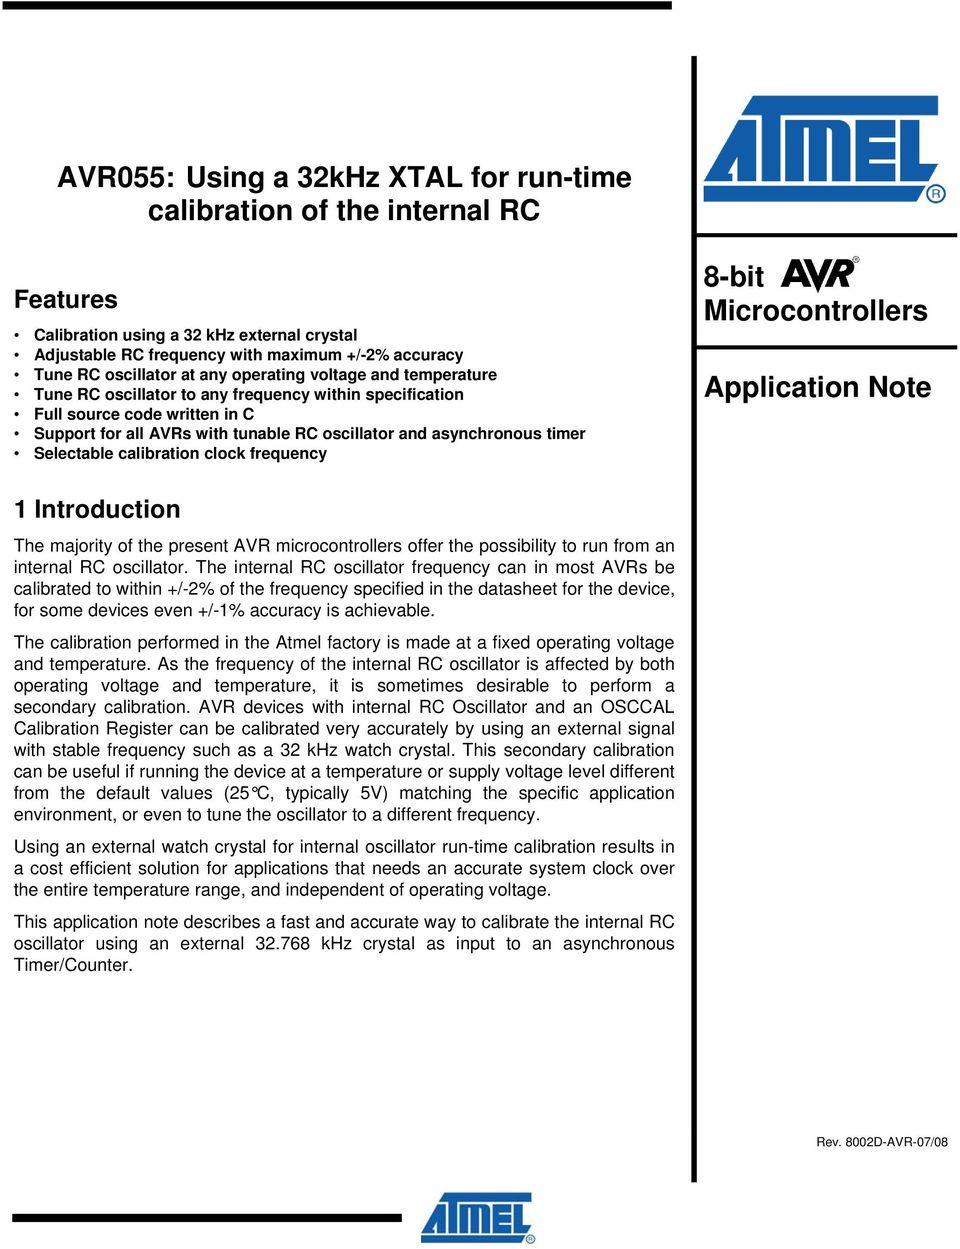 Selectable calibration clock frequency 8-bit Microcontrollers Application Note 1 Introduction The majority of the present AVR microcontrollers offer the possibility to run from an internal RC